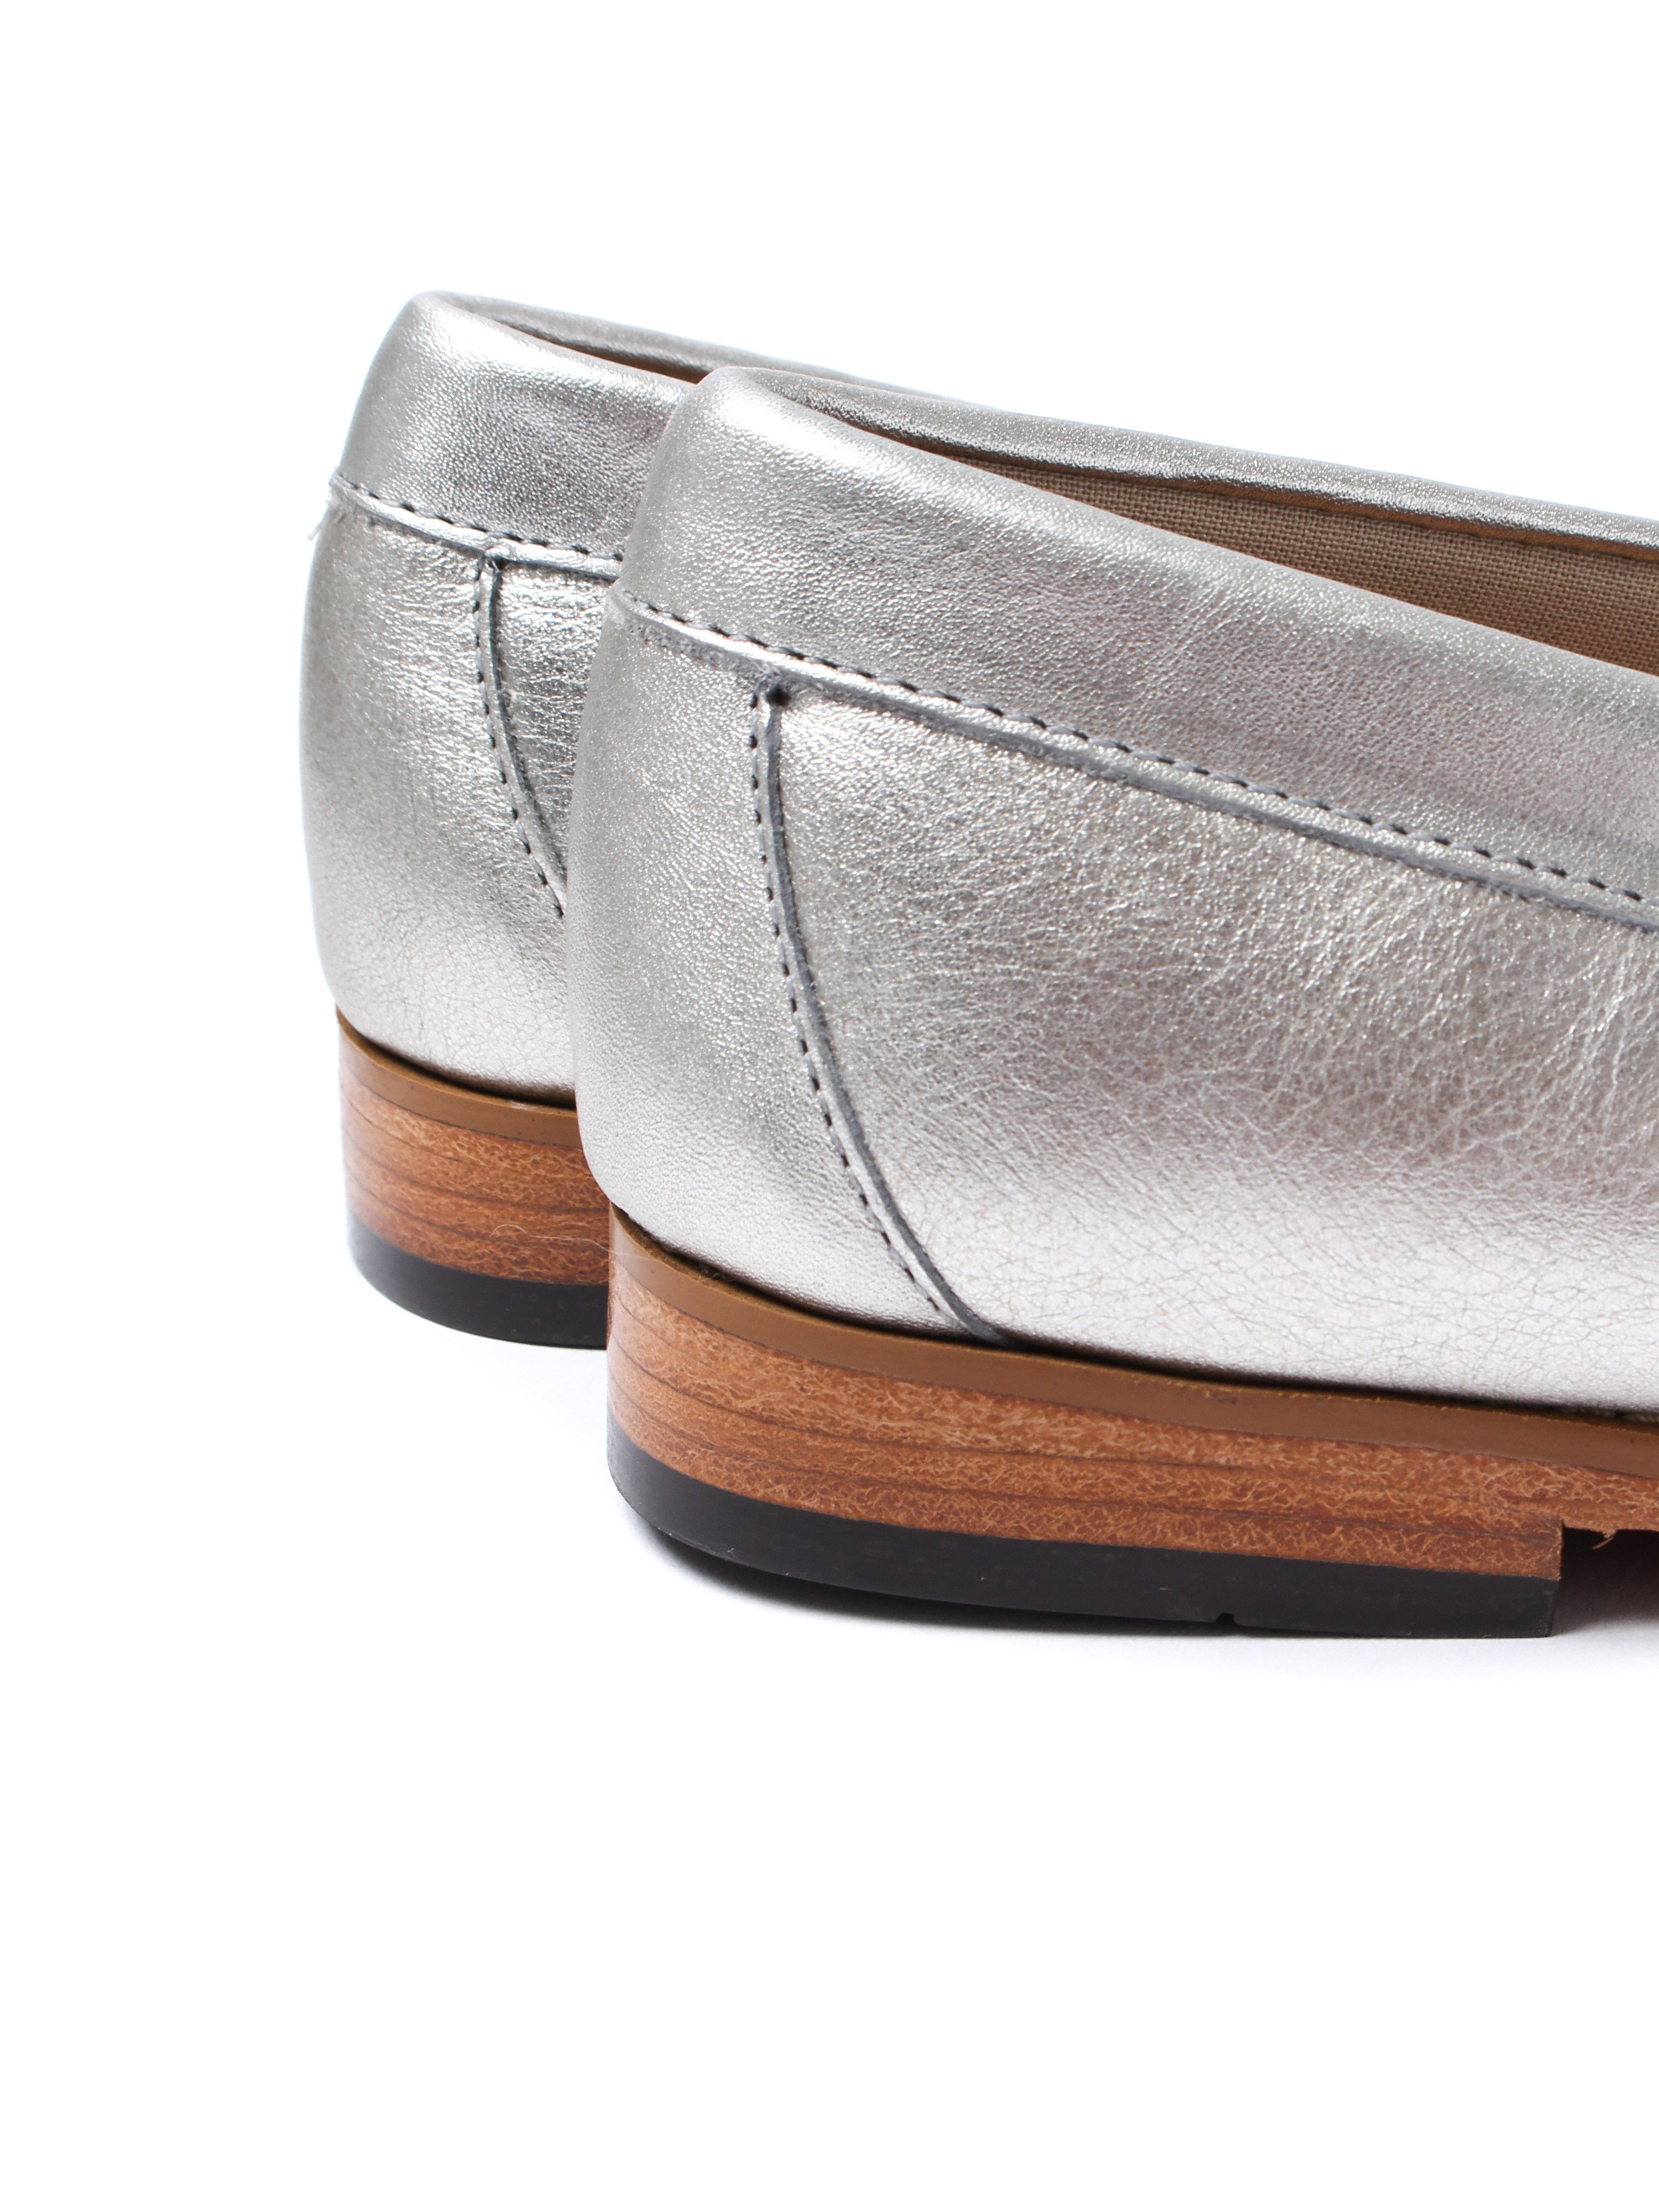 G.H. Bass Women's Weejun Penny Metal Loafer - Silver Leather